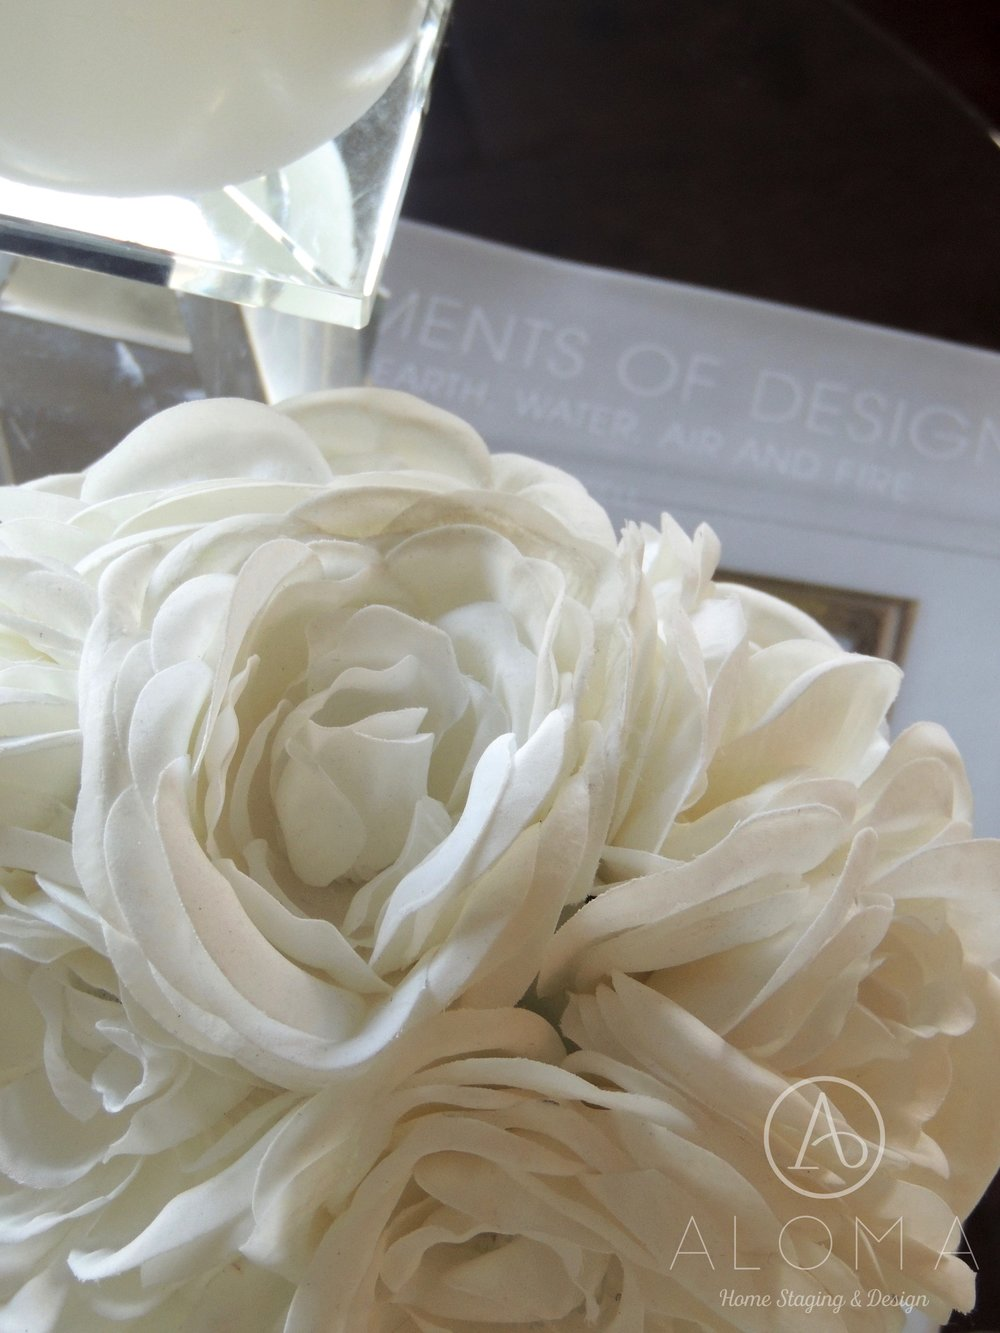 White flower arrangement by Aloma Home Staging & Design